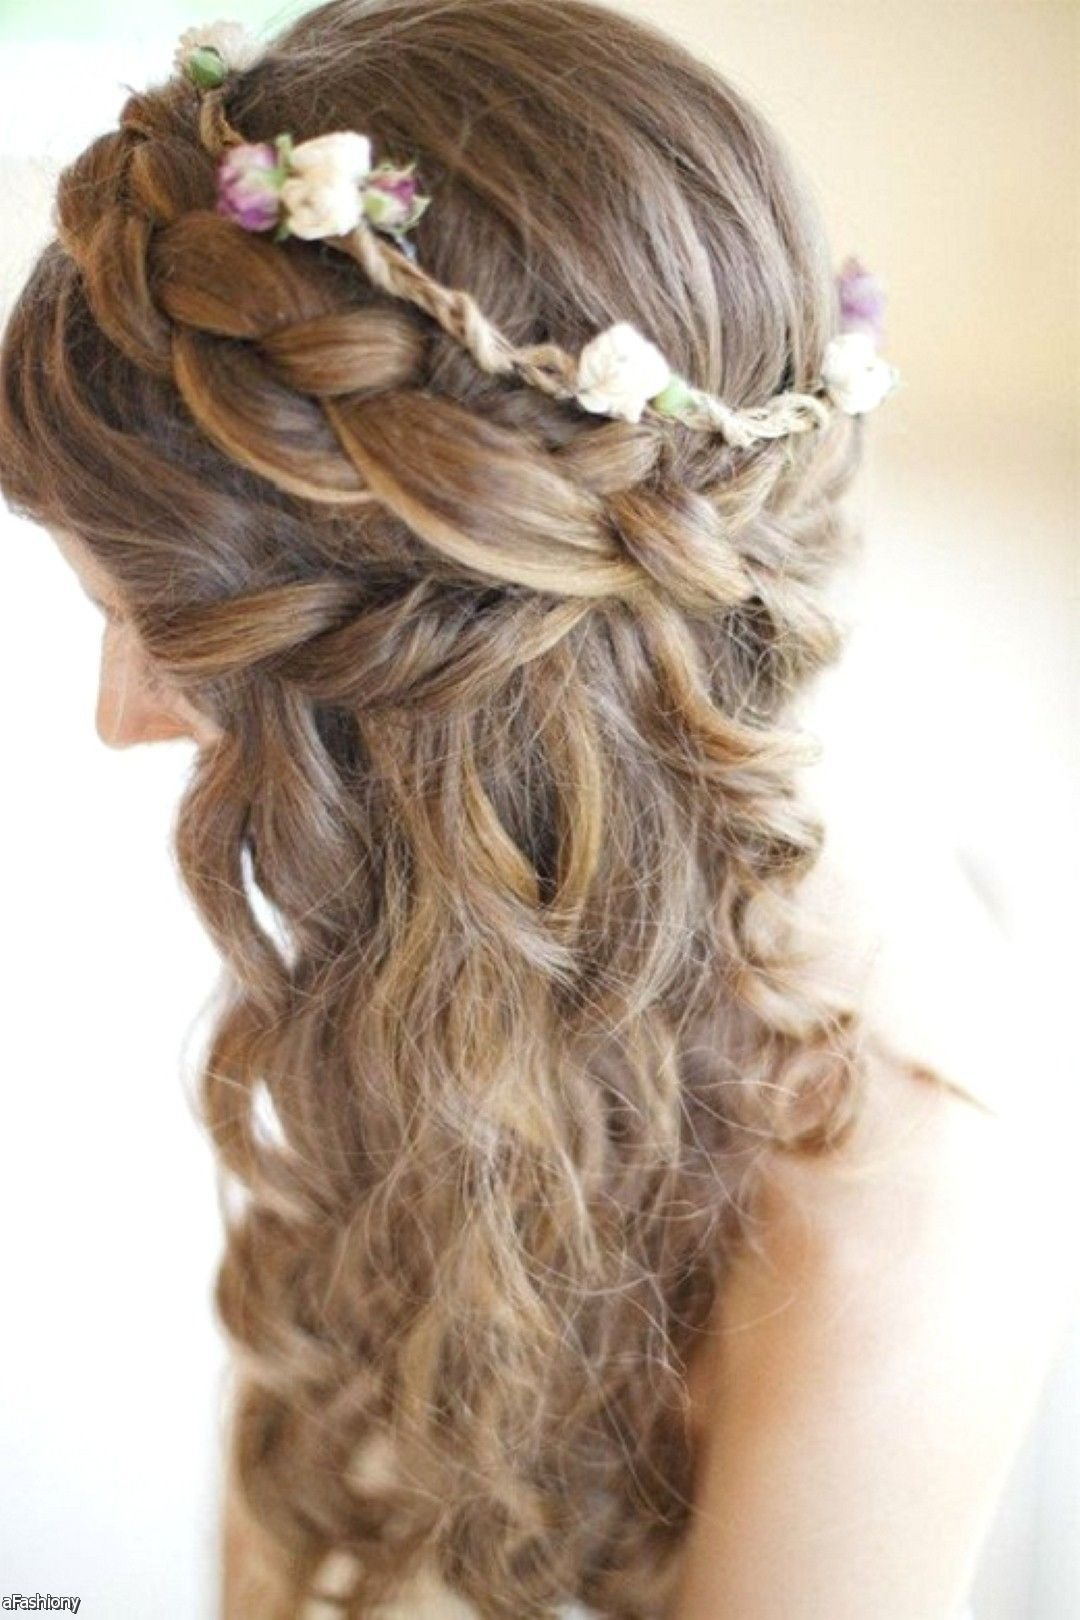 The Best 40 Most Charming Prom Hairstyles For 2016 Fave Hairstyles Pictures